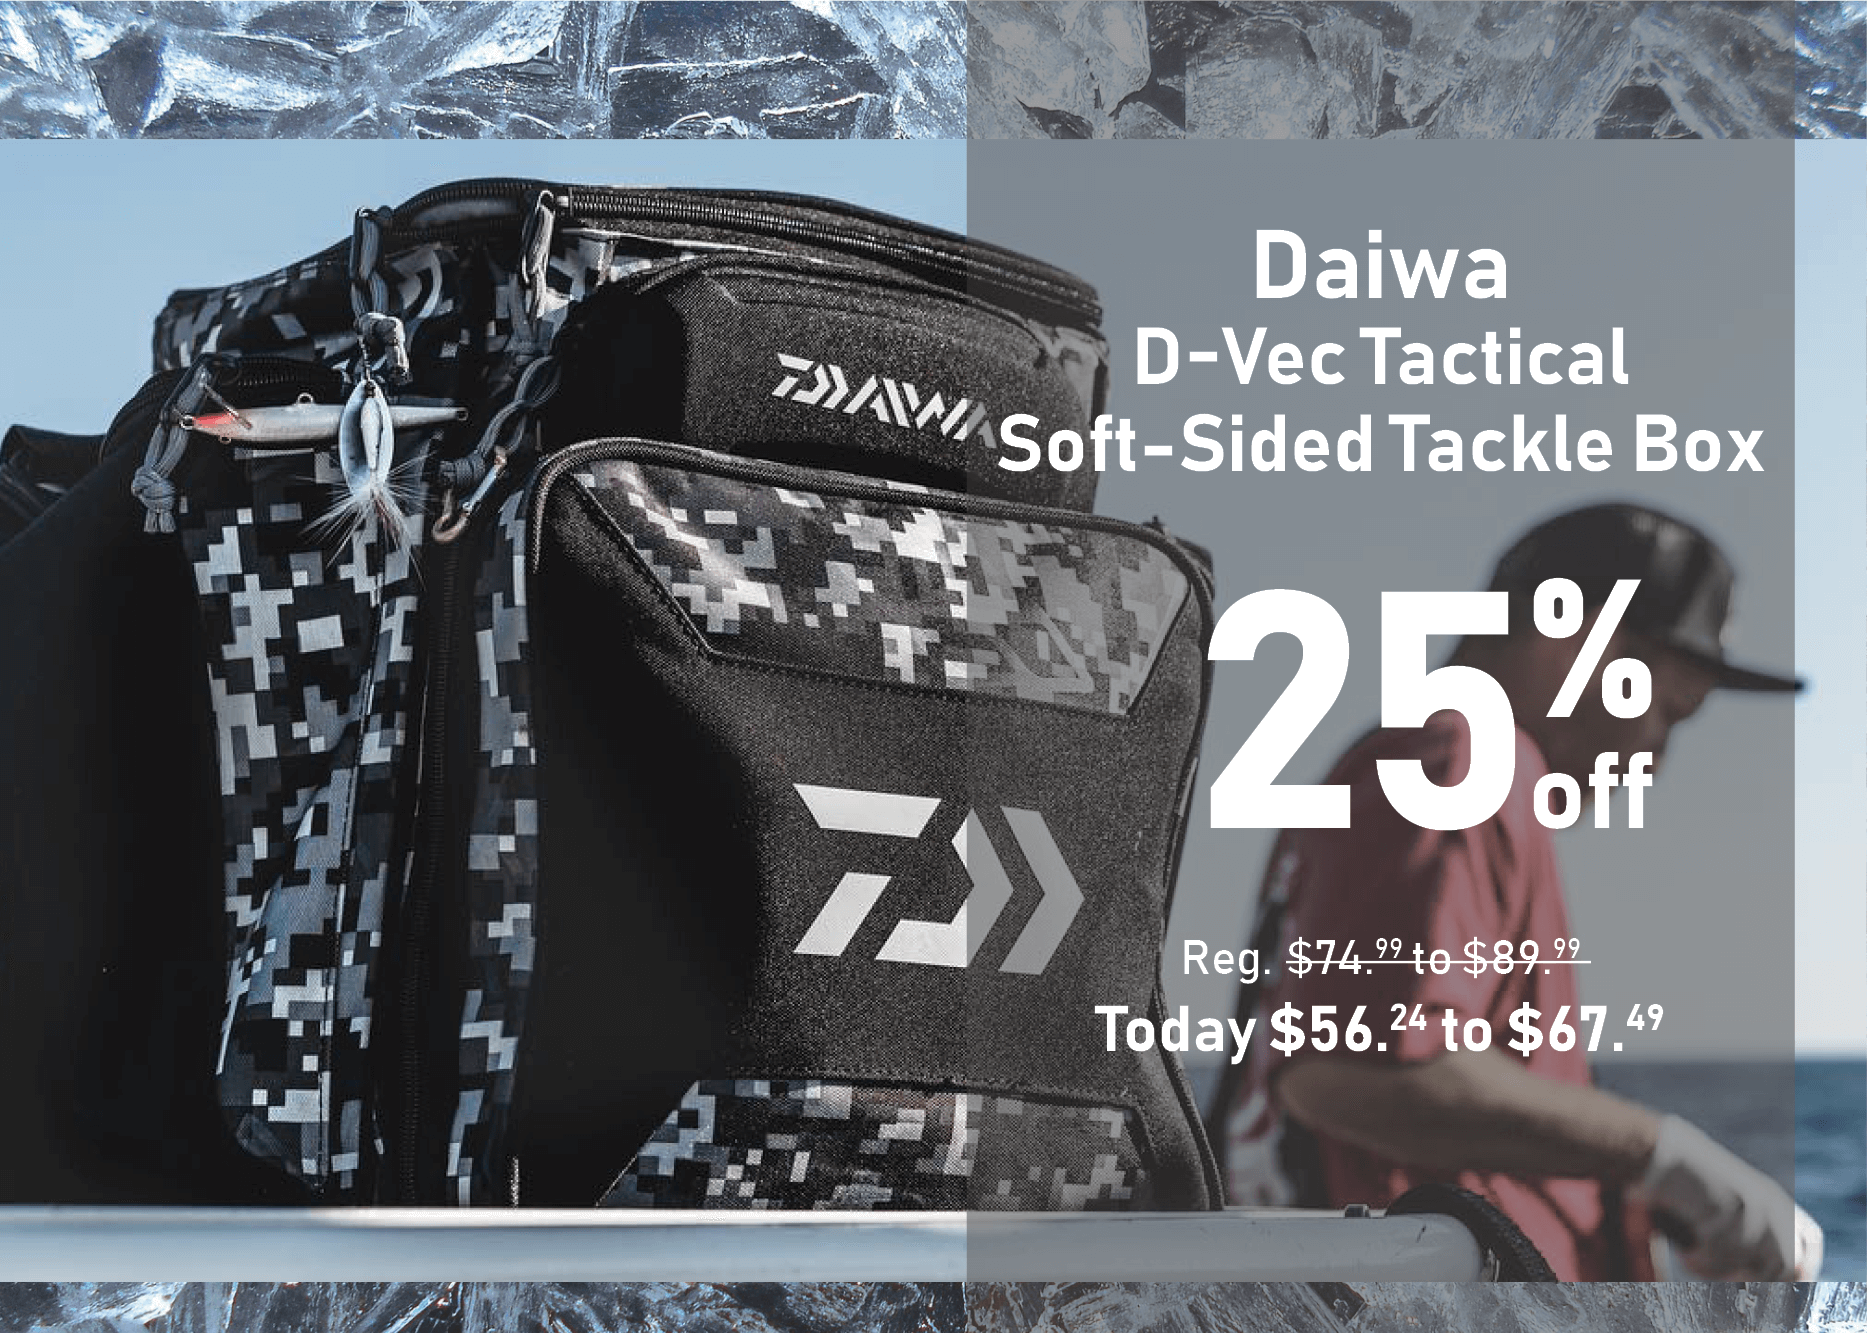 Save 25% on the Daiwa D-Vec Tactical Soft-Sided Tackle Box